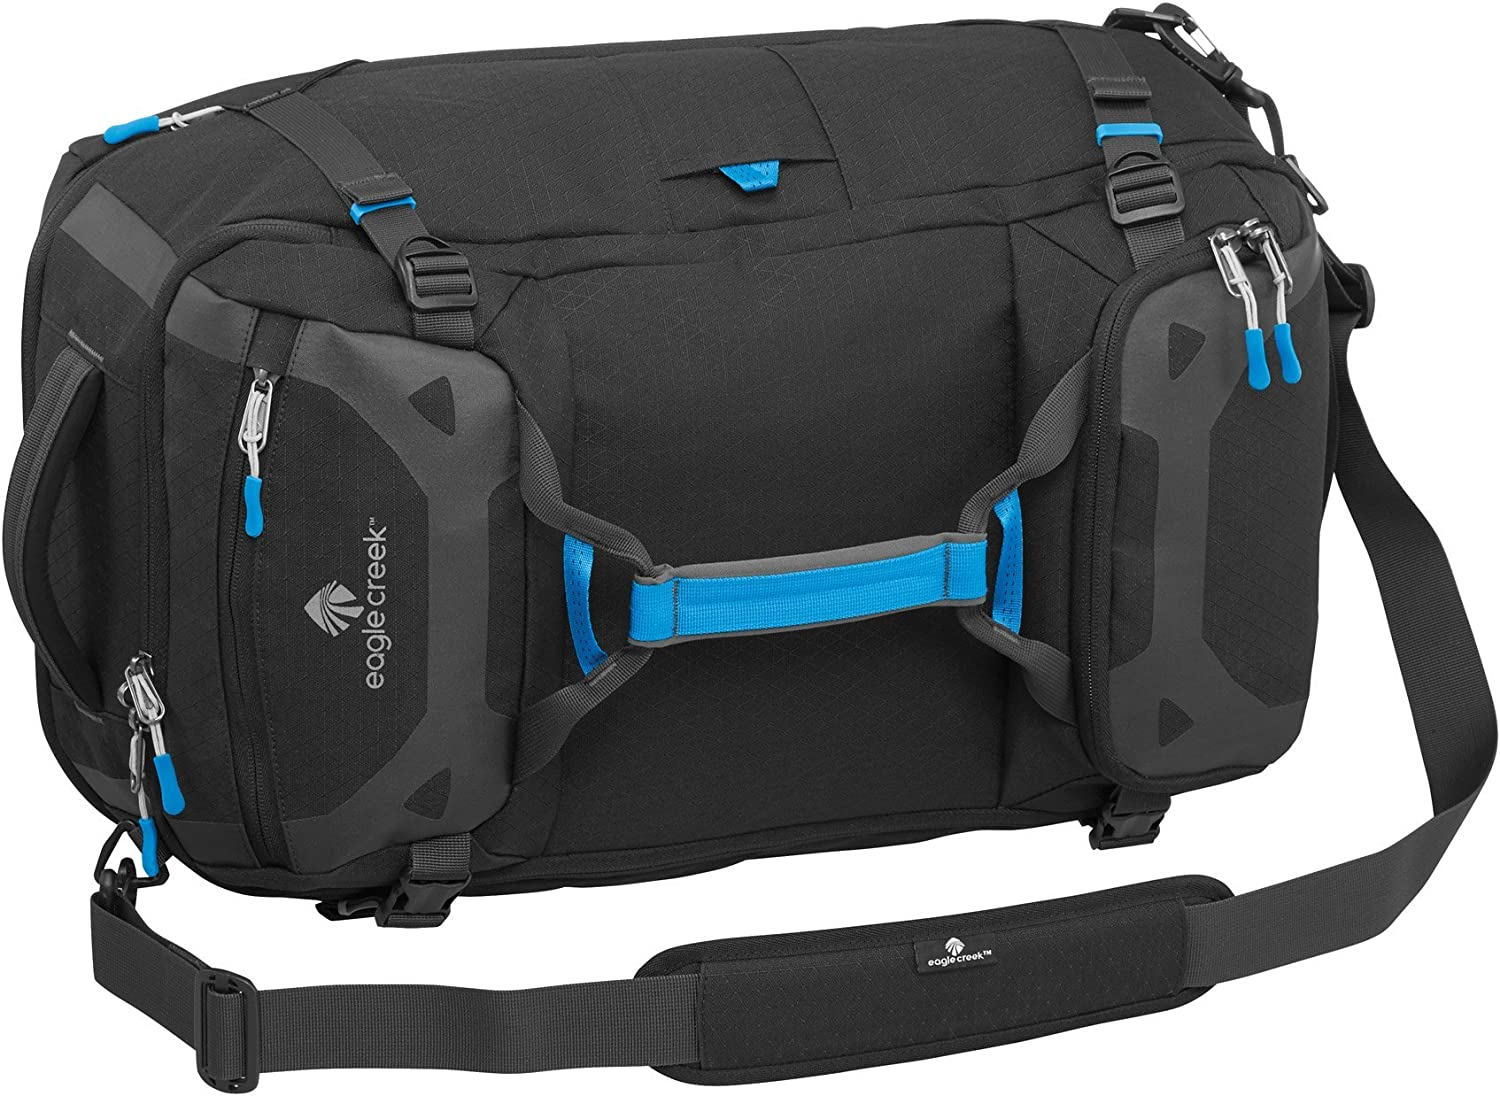 81bCZNnus3L. AC SL1500 | The 10 Best Travel Backpack for Europe 2020